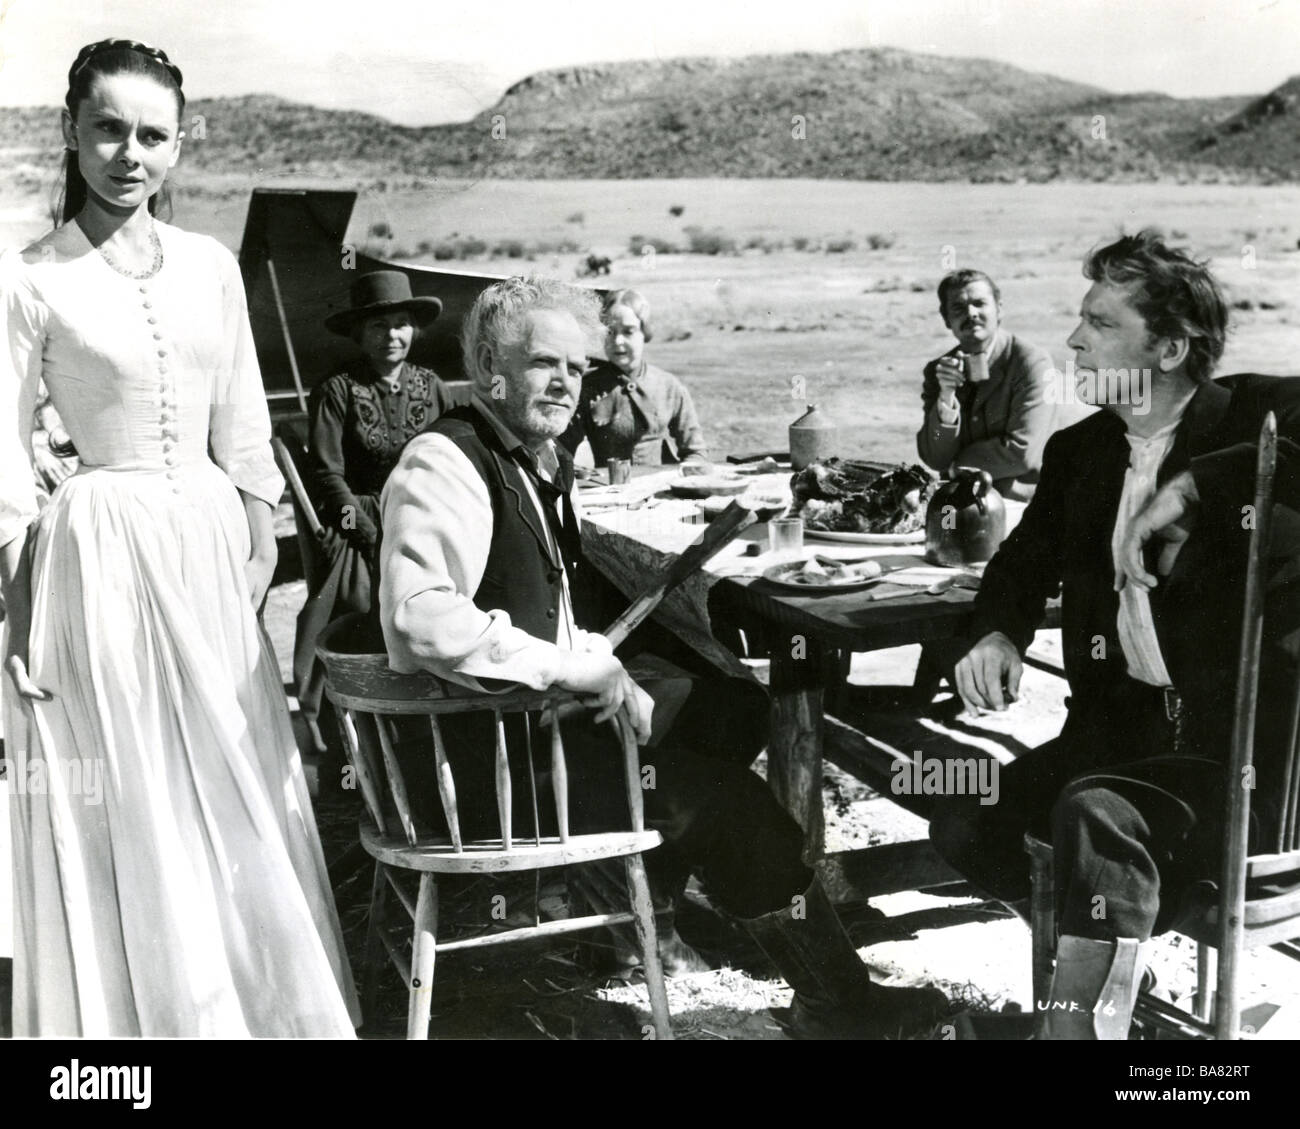 THE UNFORGIVEN 1960 UA film with Audrey Hepburn and Burt Lancaster at right - Stock Image